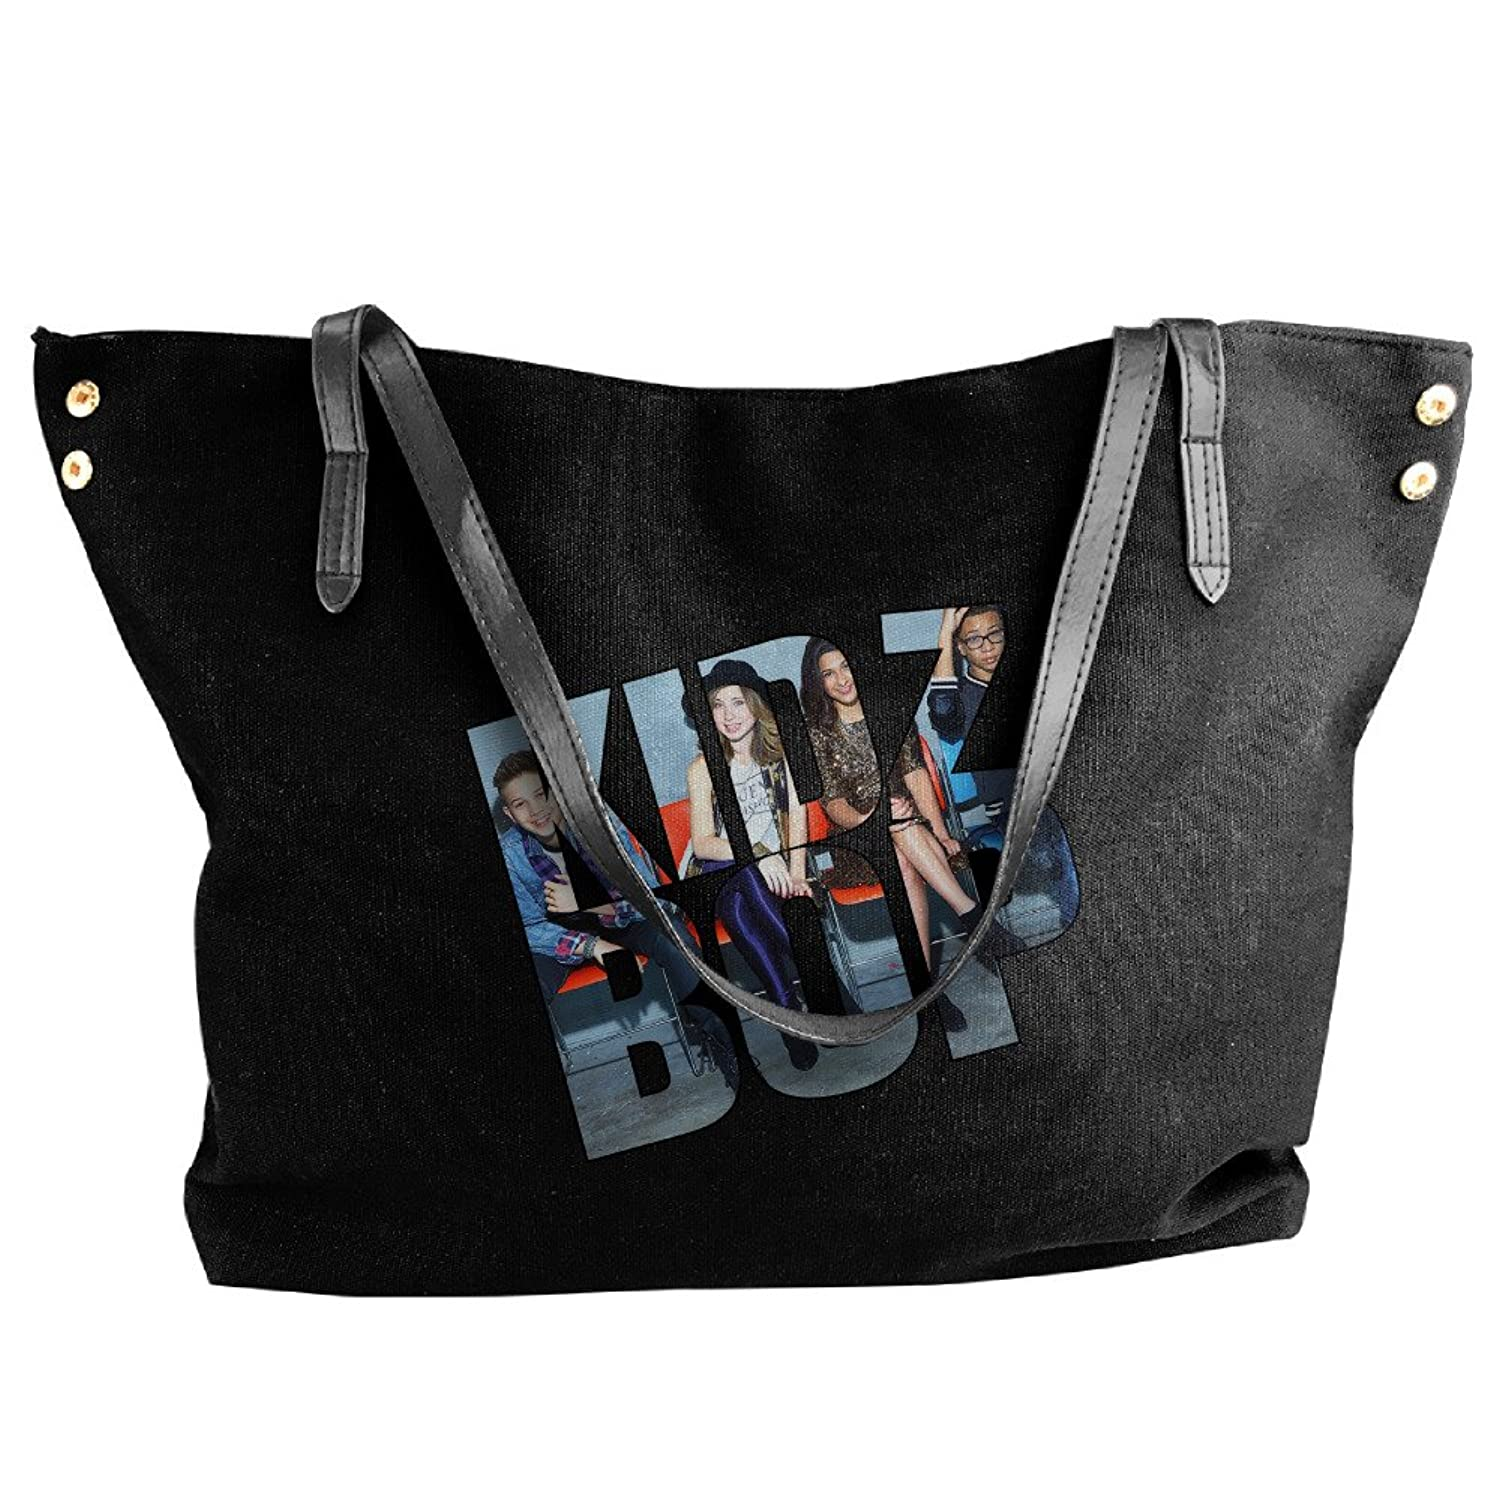 KIDZ BOP Retail Bag For Women Black